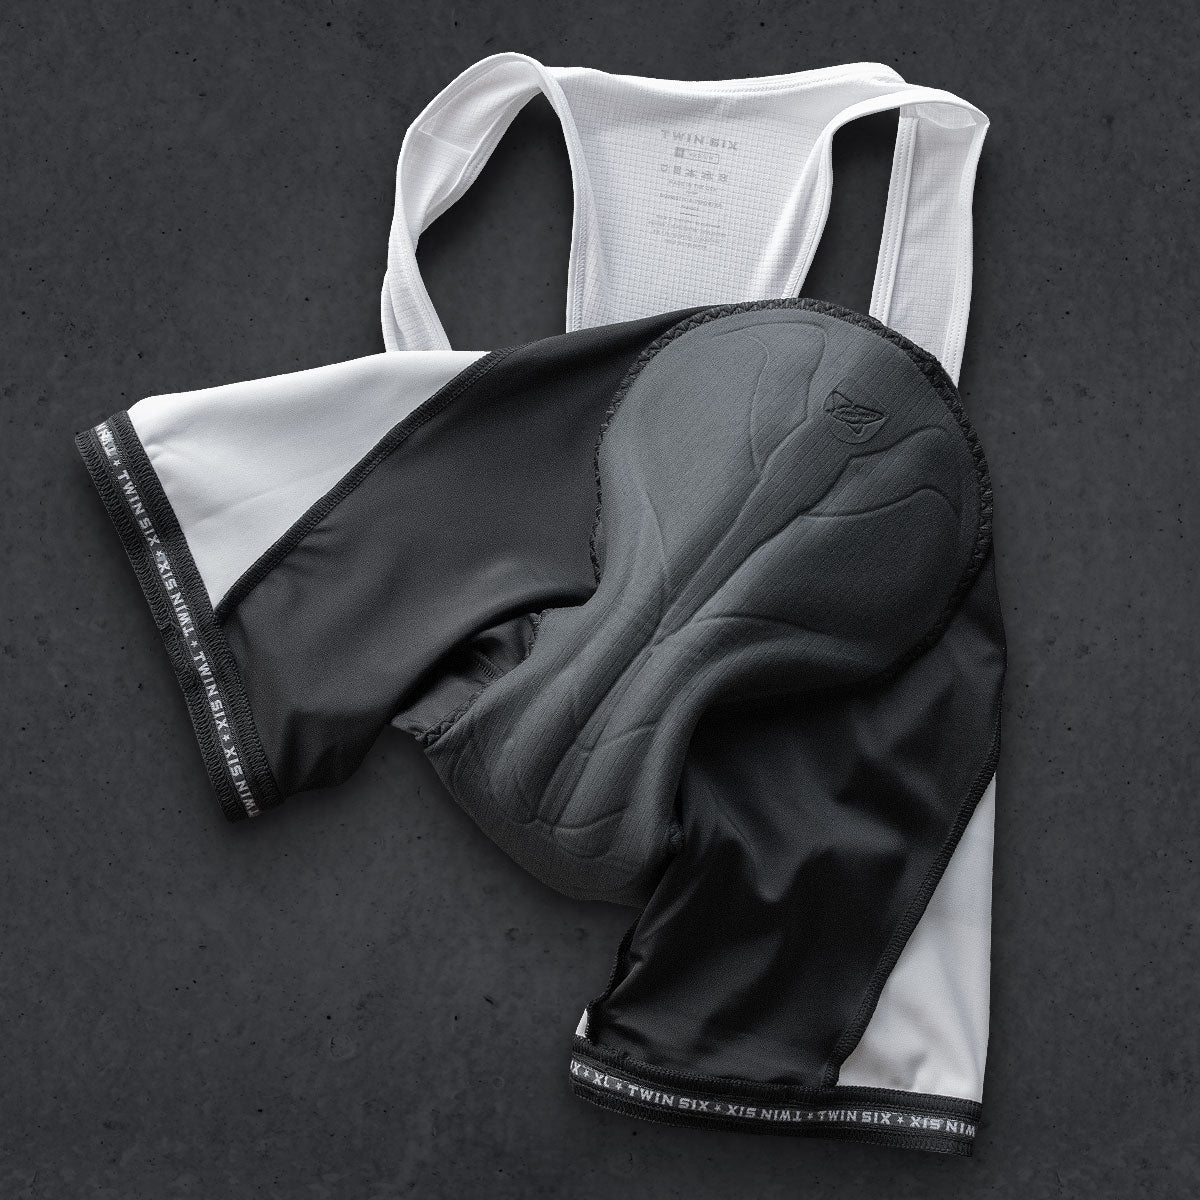 Cat 6 Bib Shorts